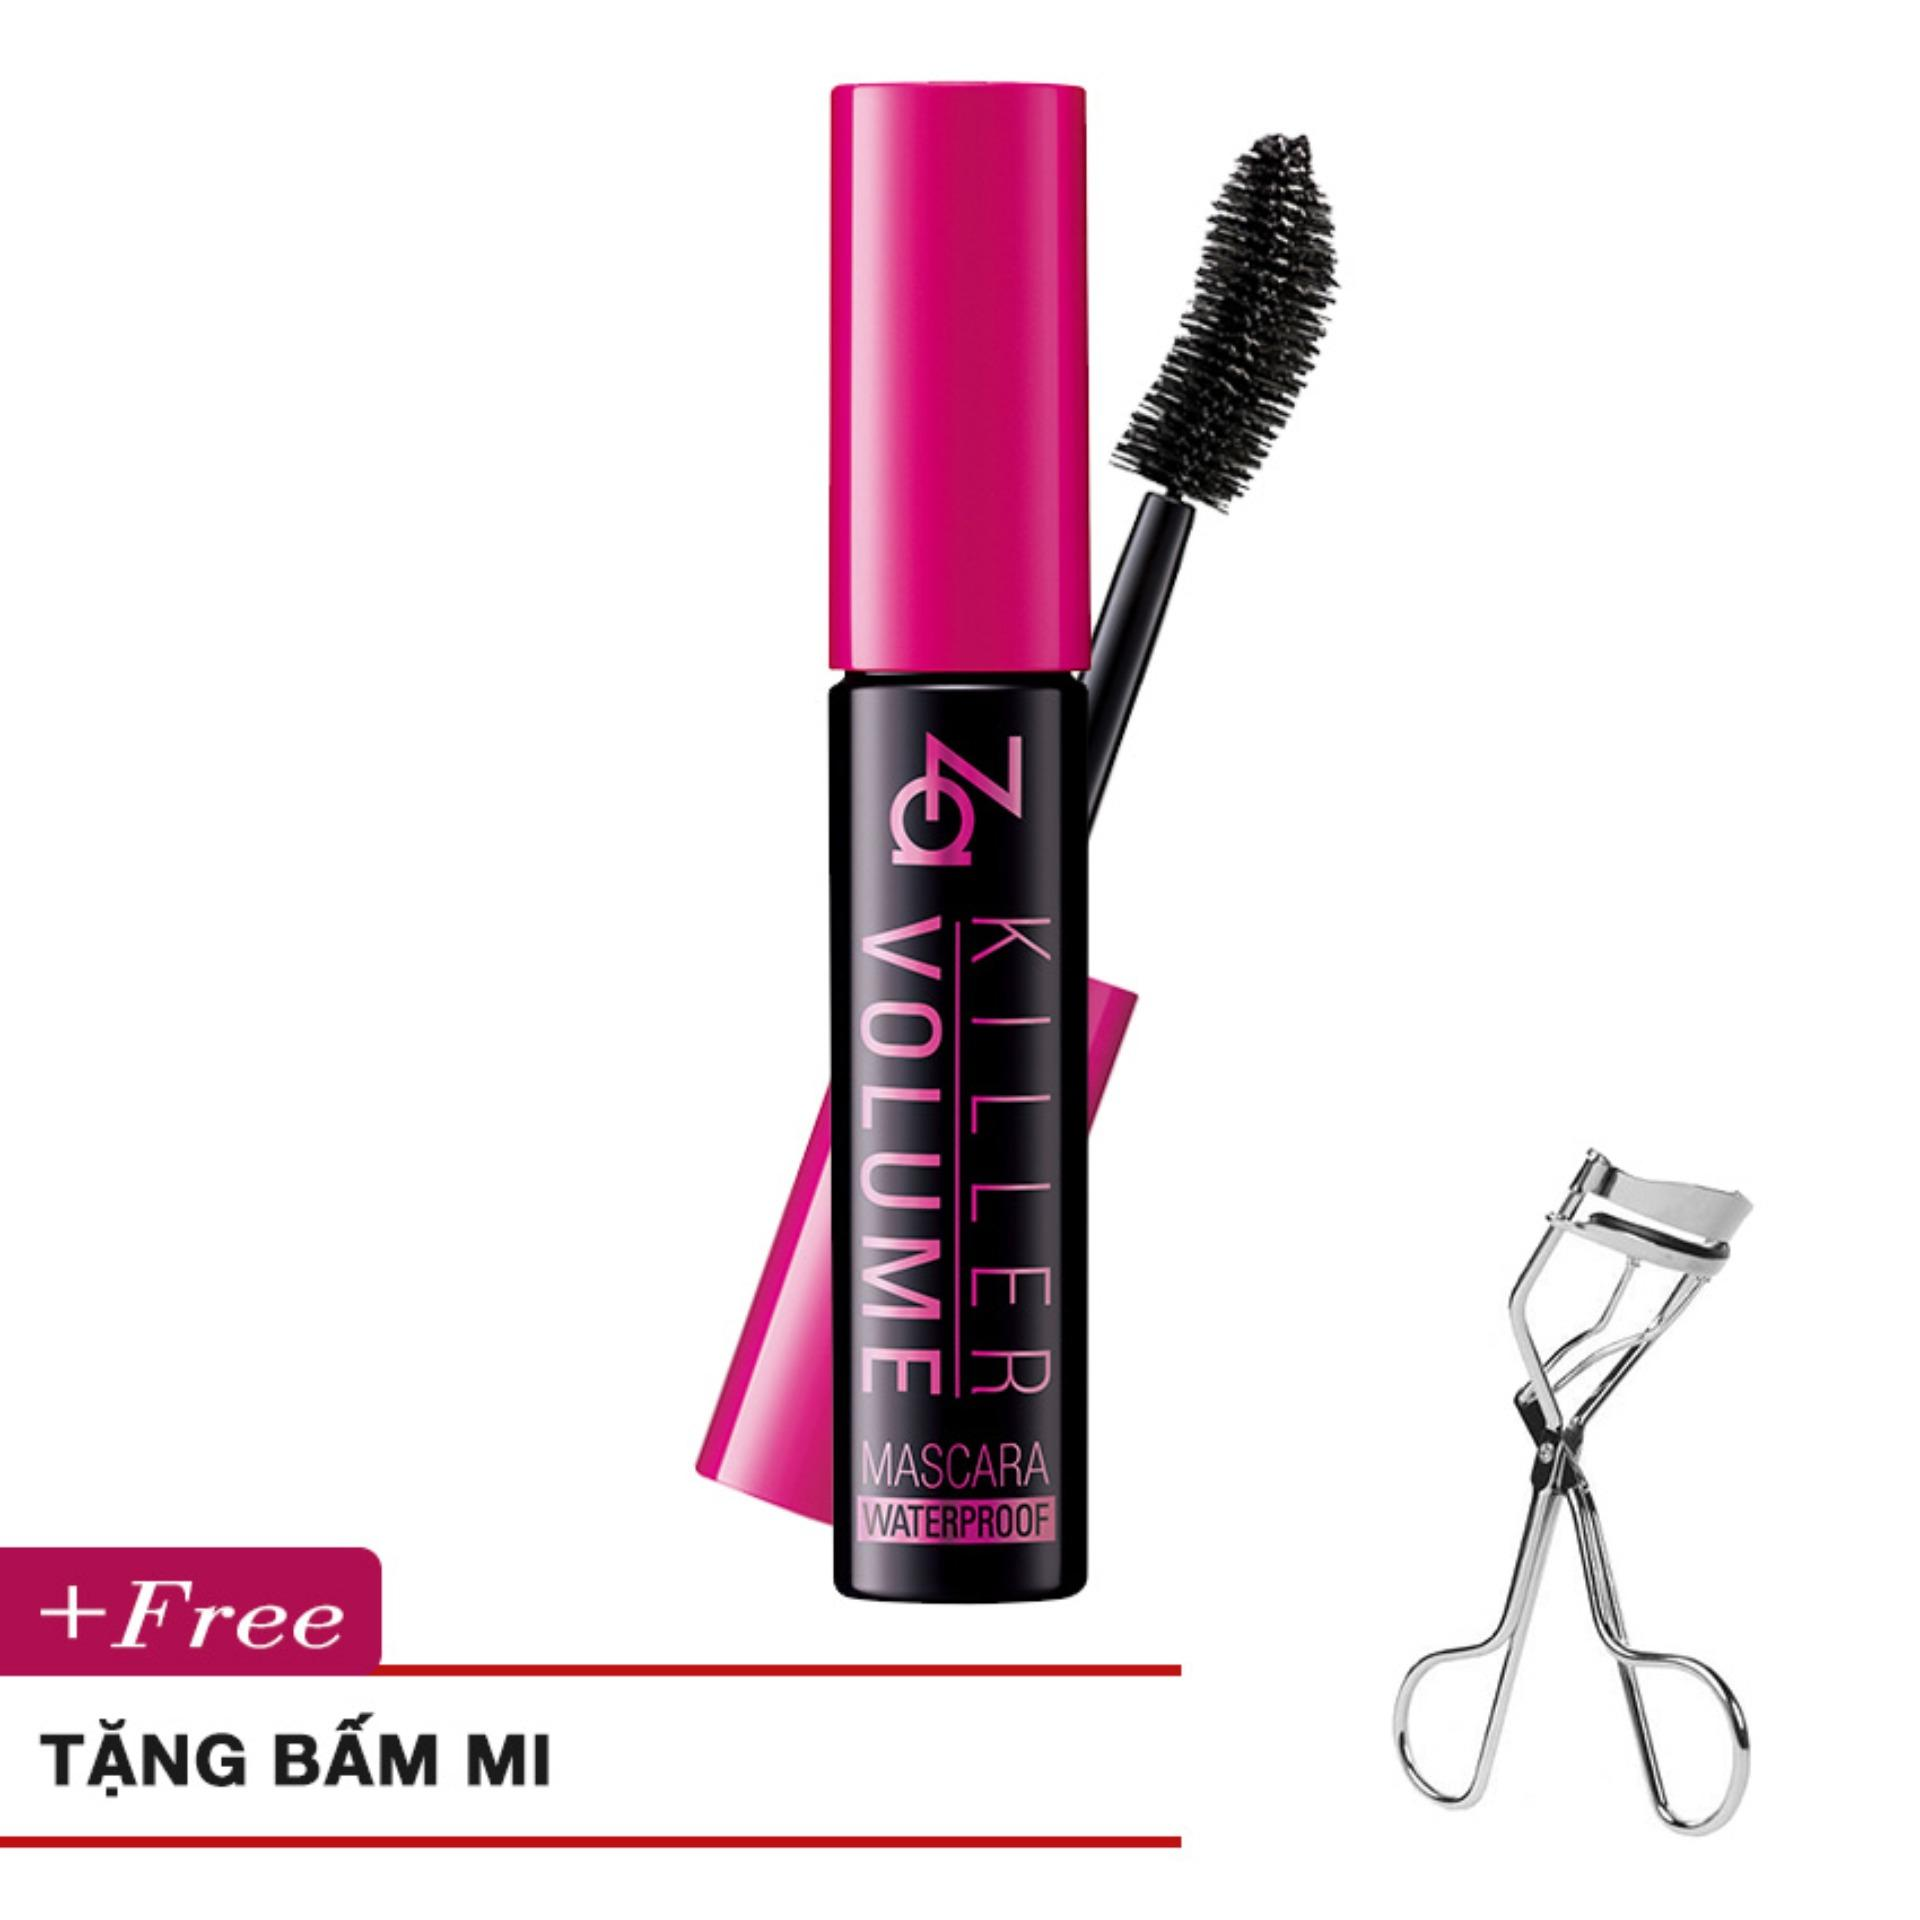 Mascara Lam Dai Va Day Mi Killer Volume Mascara N01 Real Black 9G Za Chiết Khấu 40